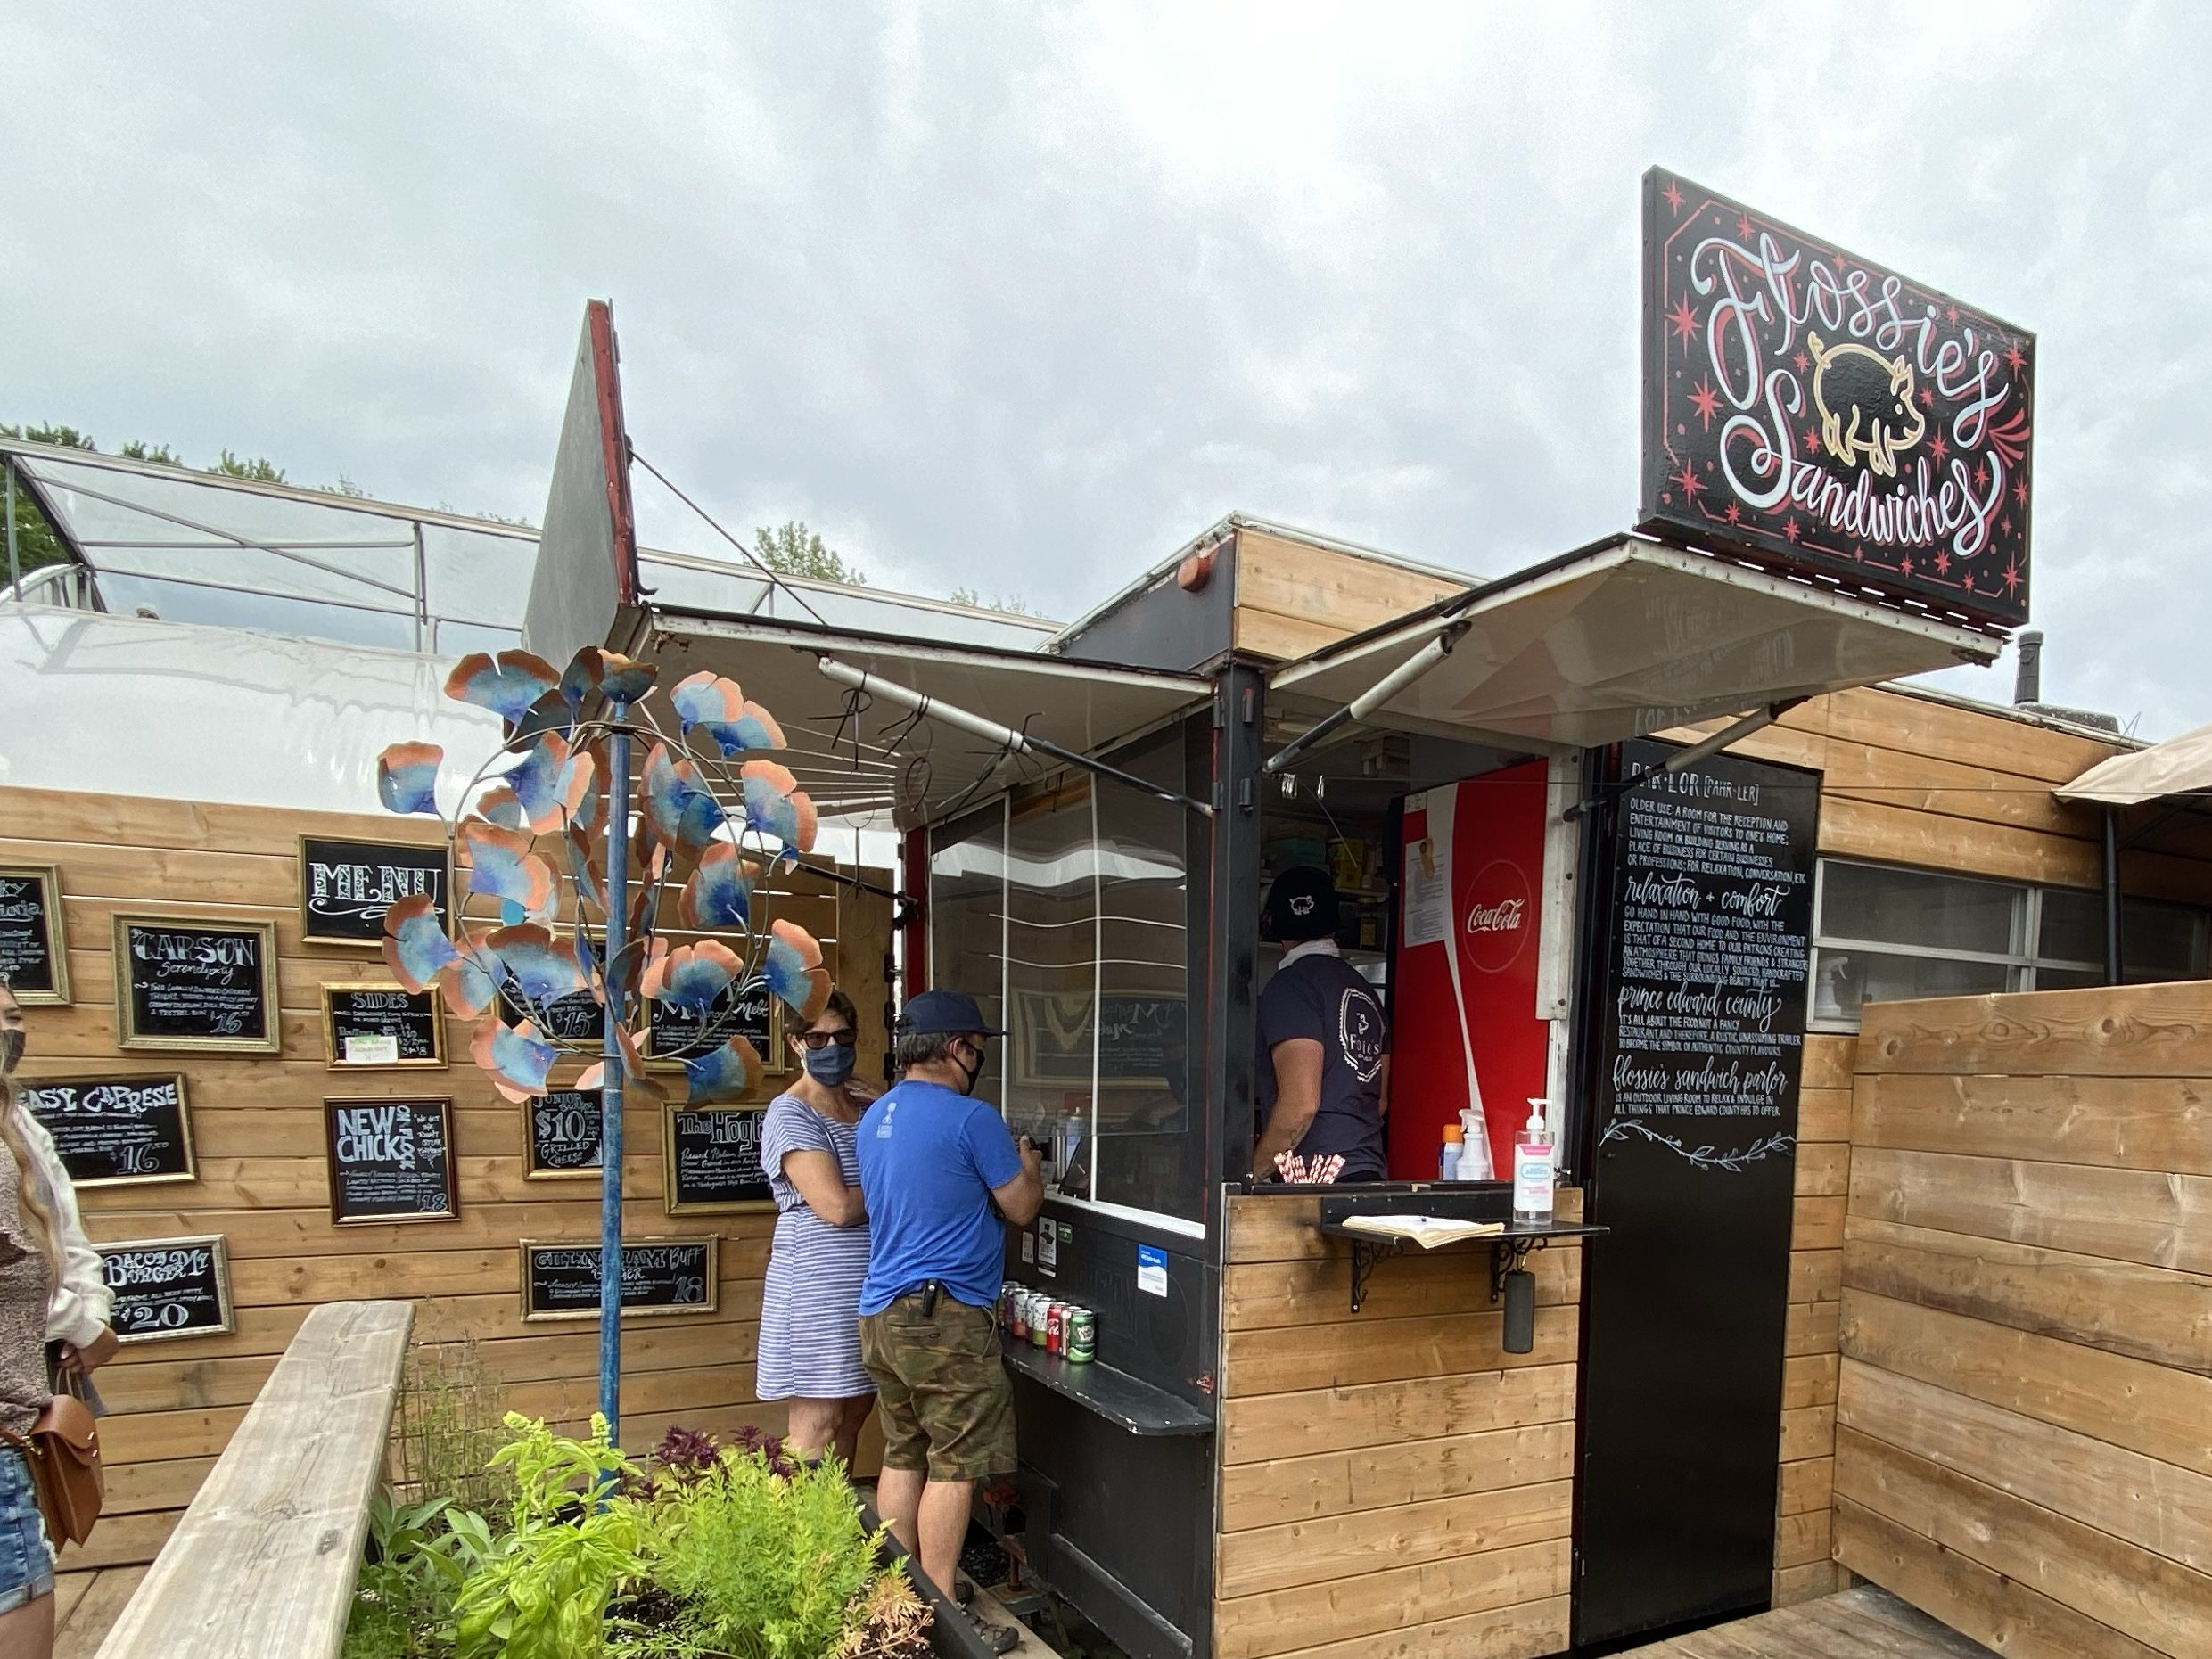 Food truck with menu on chalkboards at Flossie's Sandwich Parlor